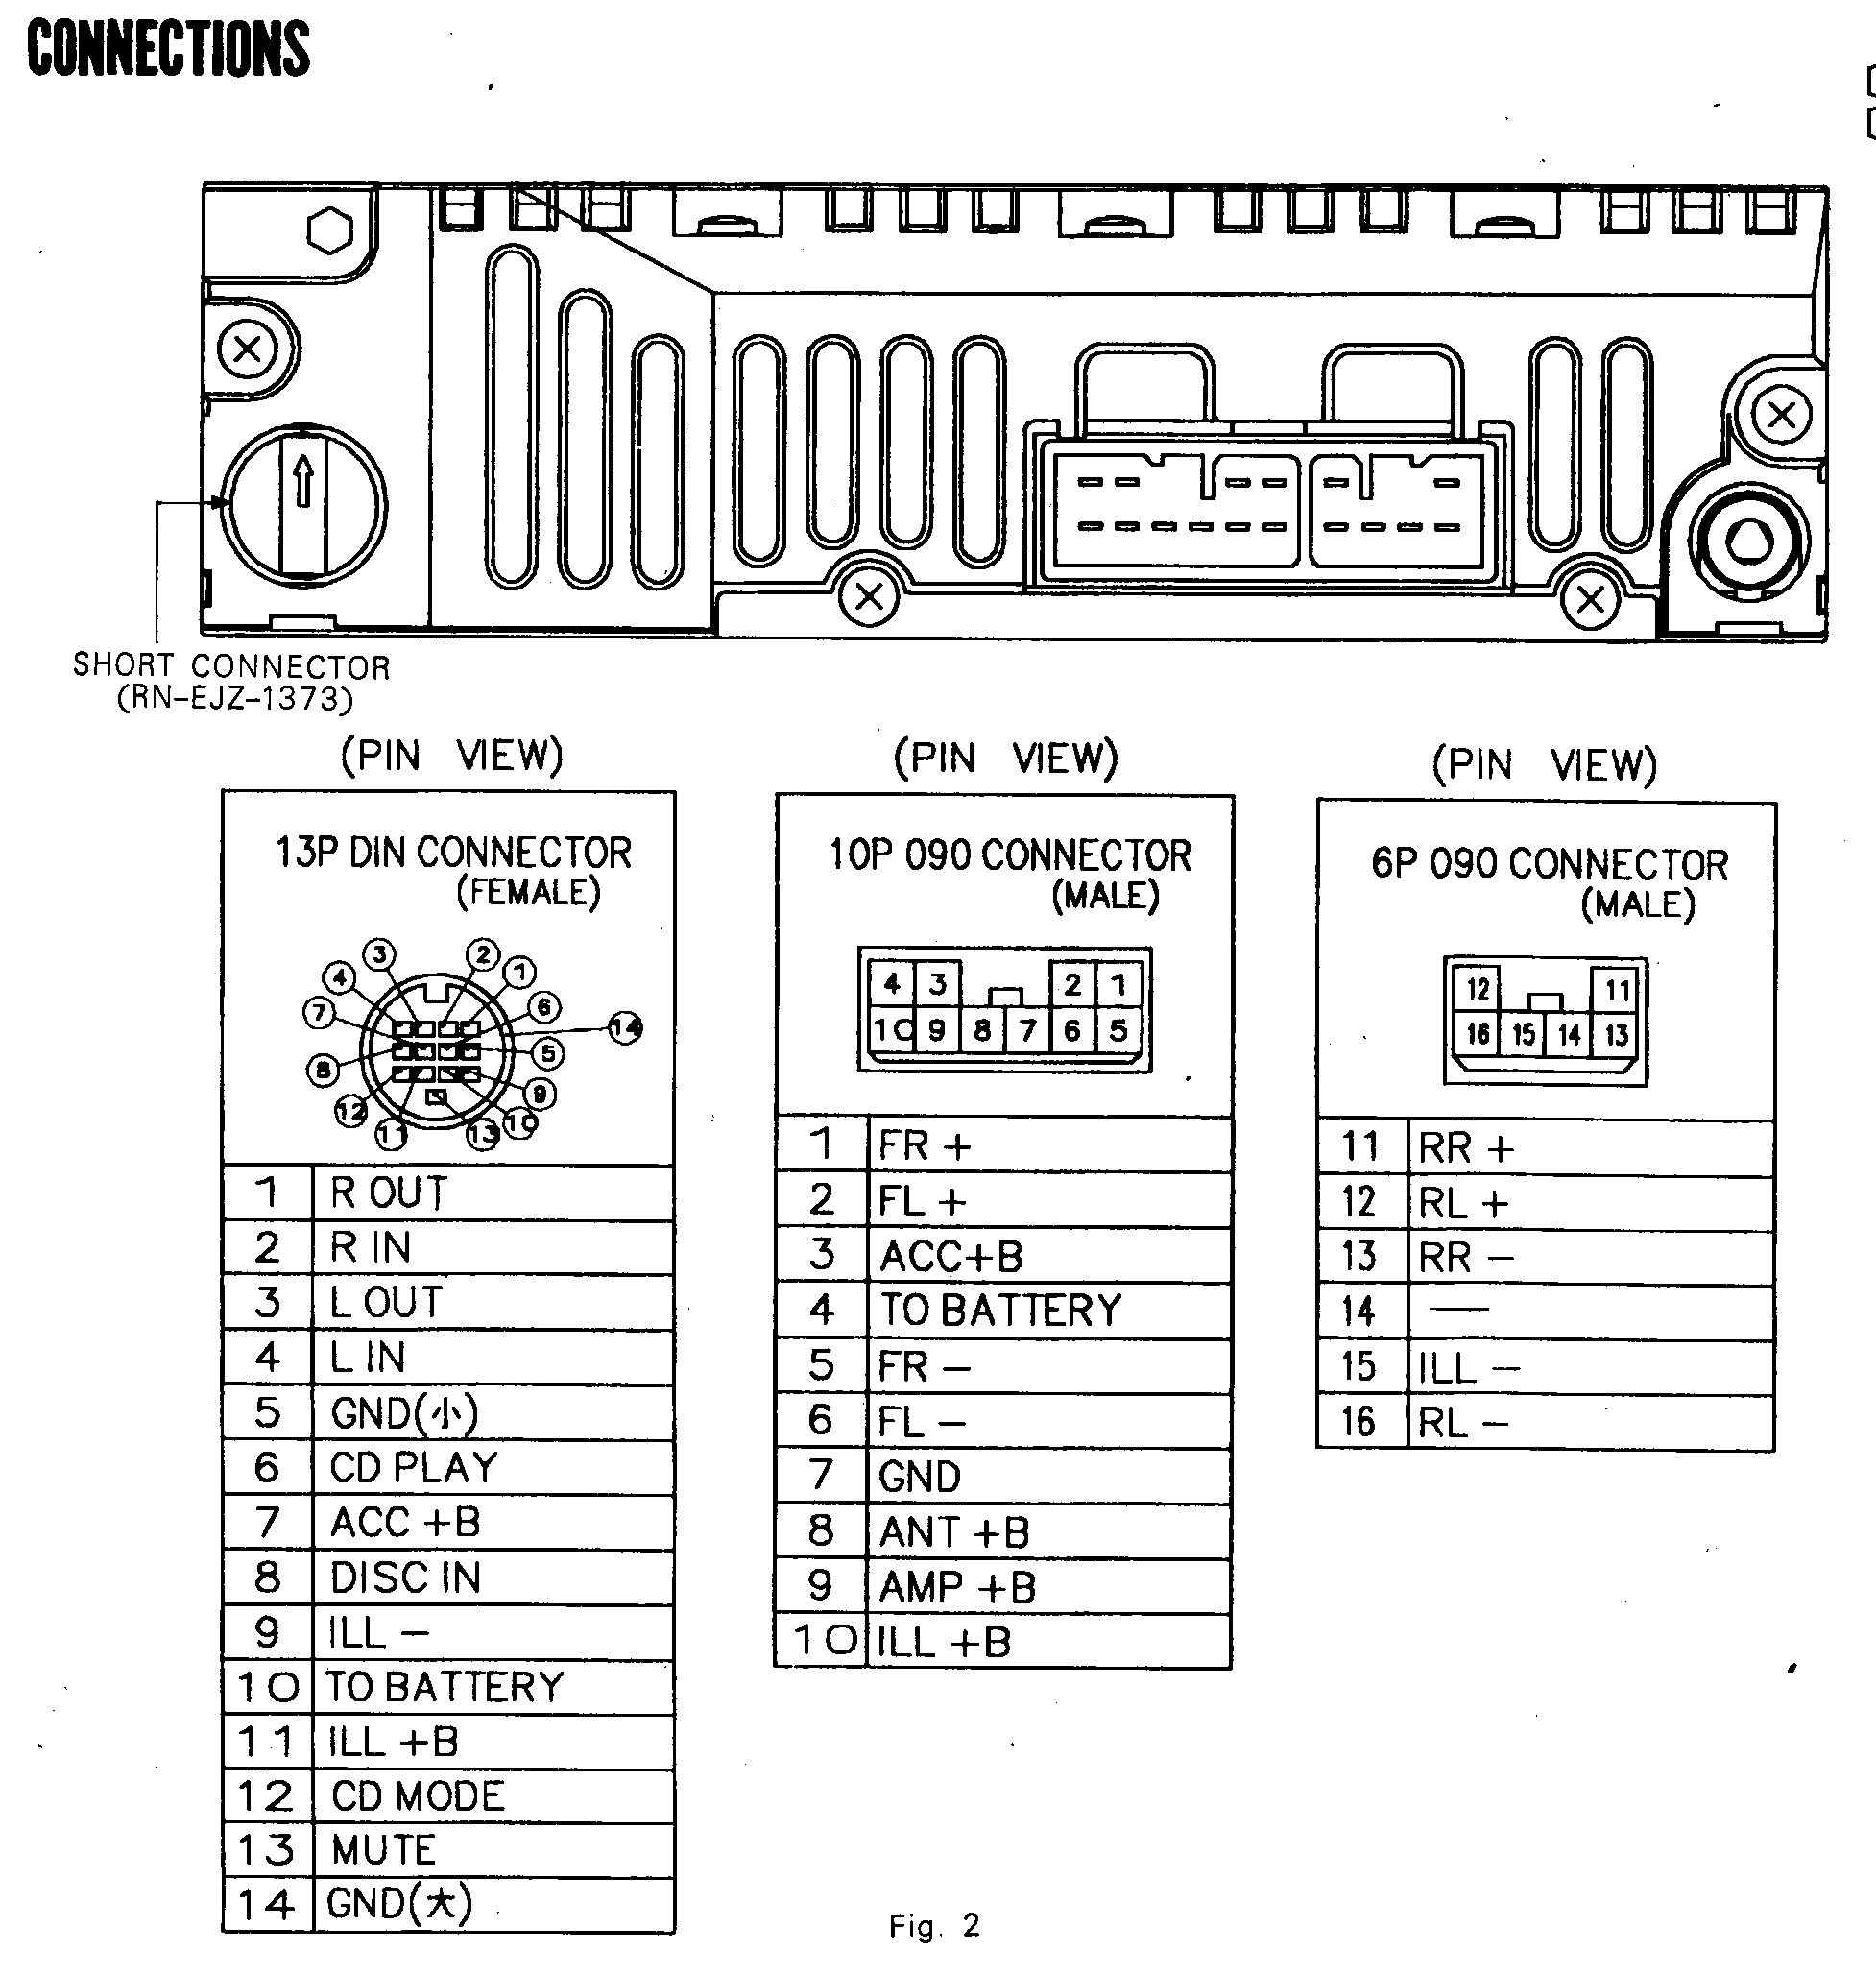 Ford 6 Disc Changer Wiring Diagram Library 7 Pin Hecho Car Stereo Repair Wire Harness Codes Bose Speaker Amplifier